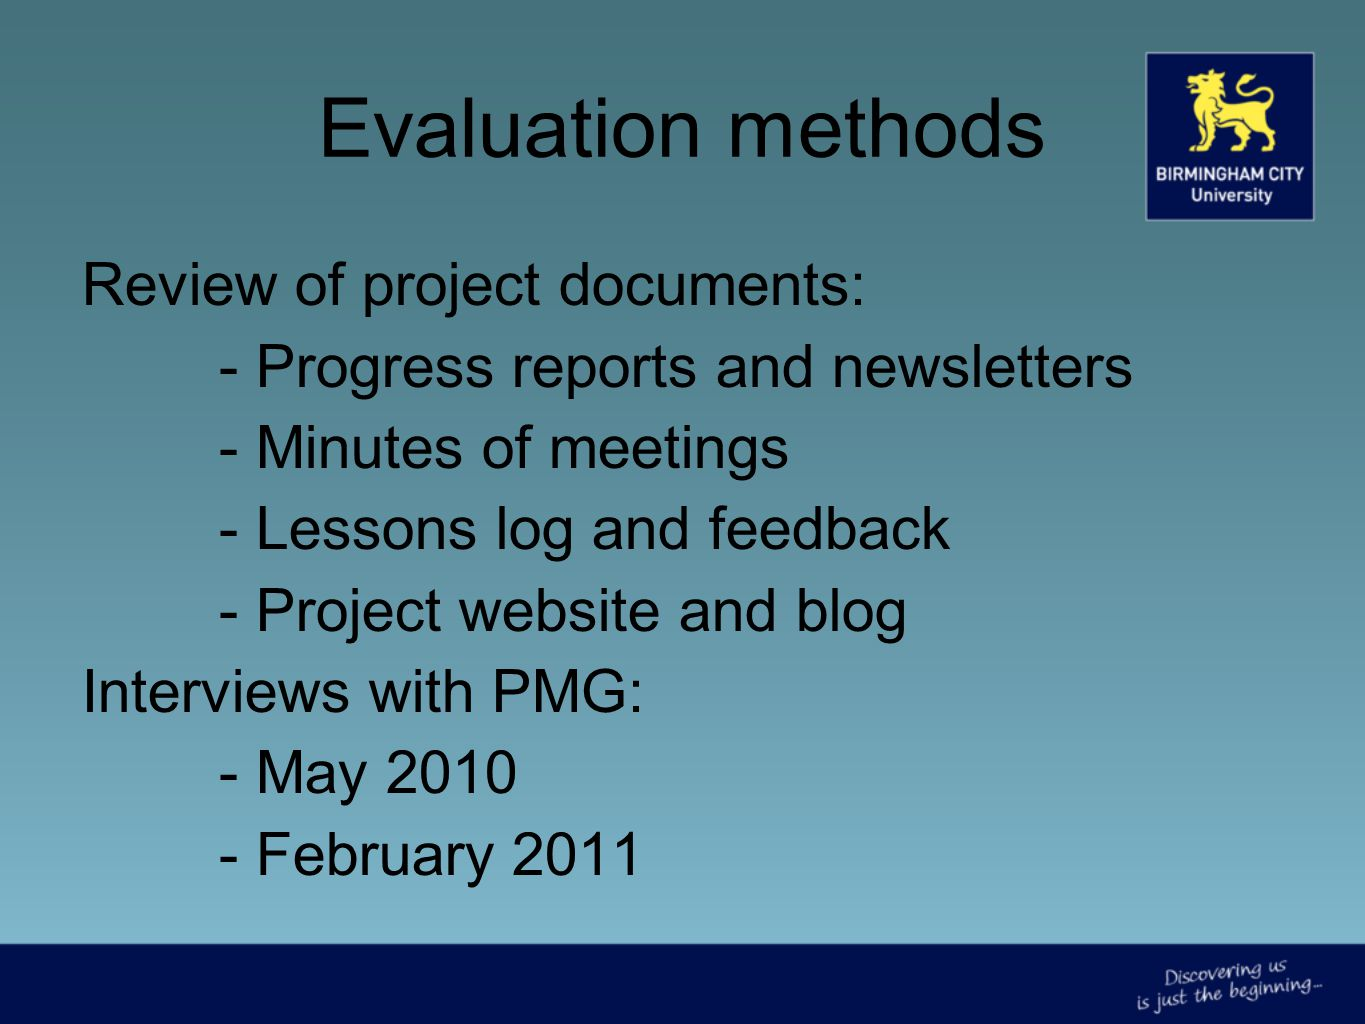 Review of project documents: - Progress reports and newsletters - Minutes of meetings - Lessons log and feedback - Project website and blog Interviews with PMG: - May 2010 - February 2011 Evaluation methods